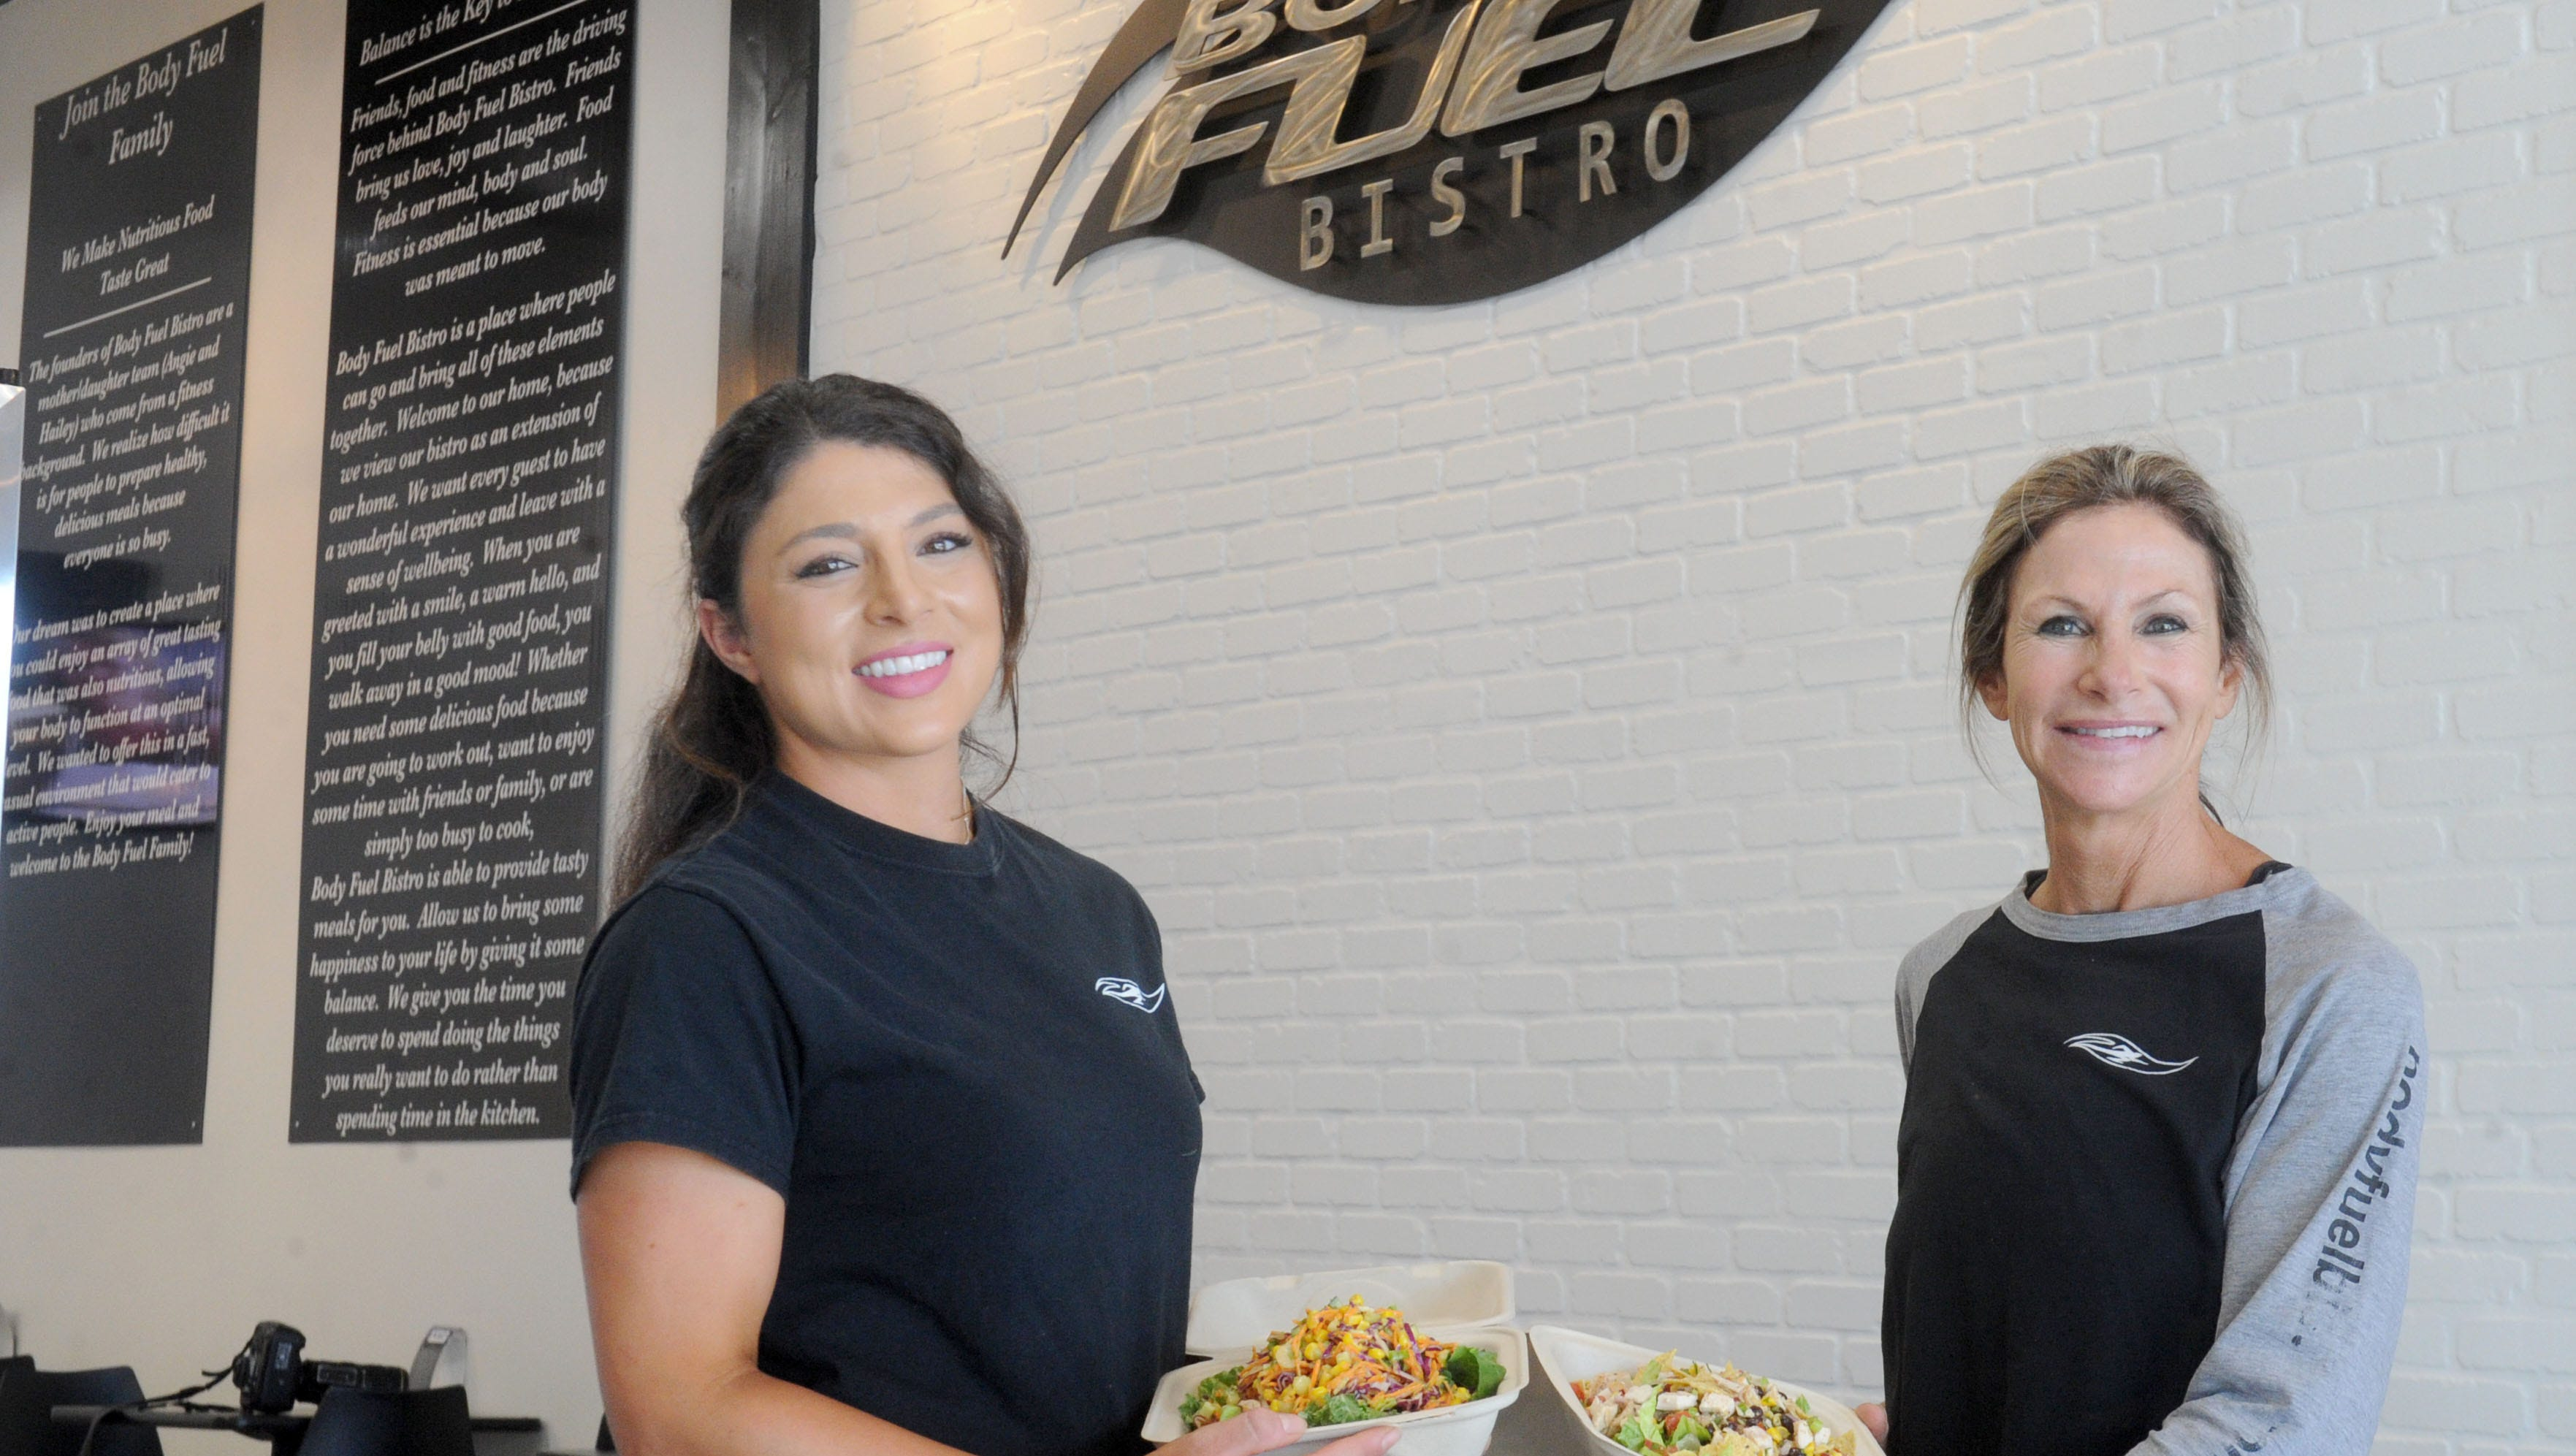 Cafe Society: Mother-daughter team fuels healthy eating at Port Hueneme restaurant